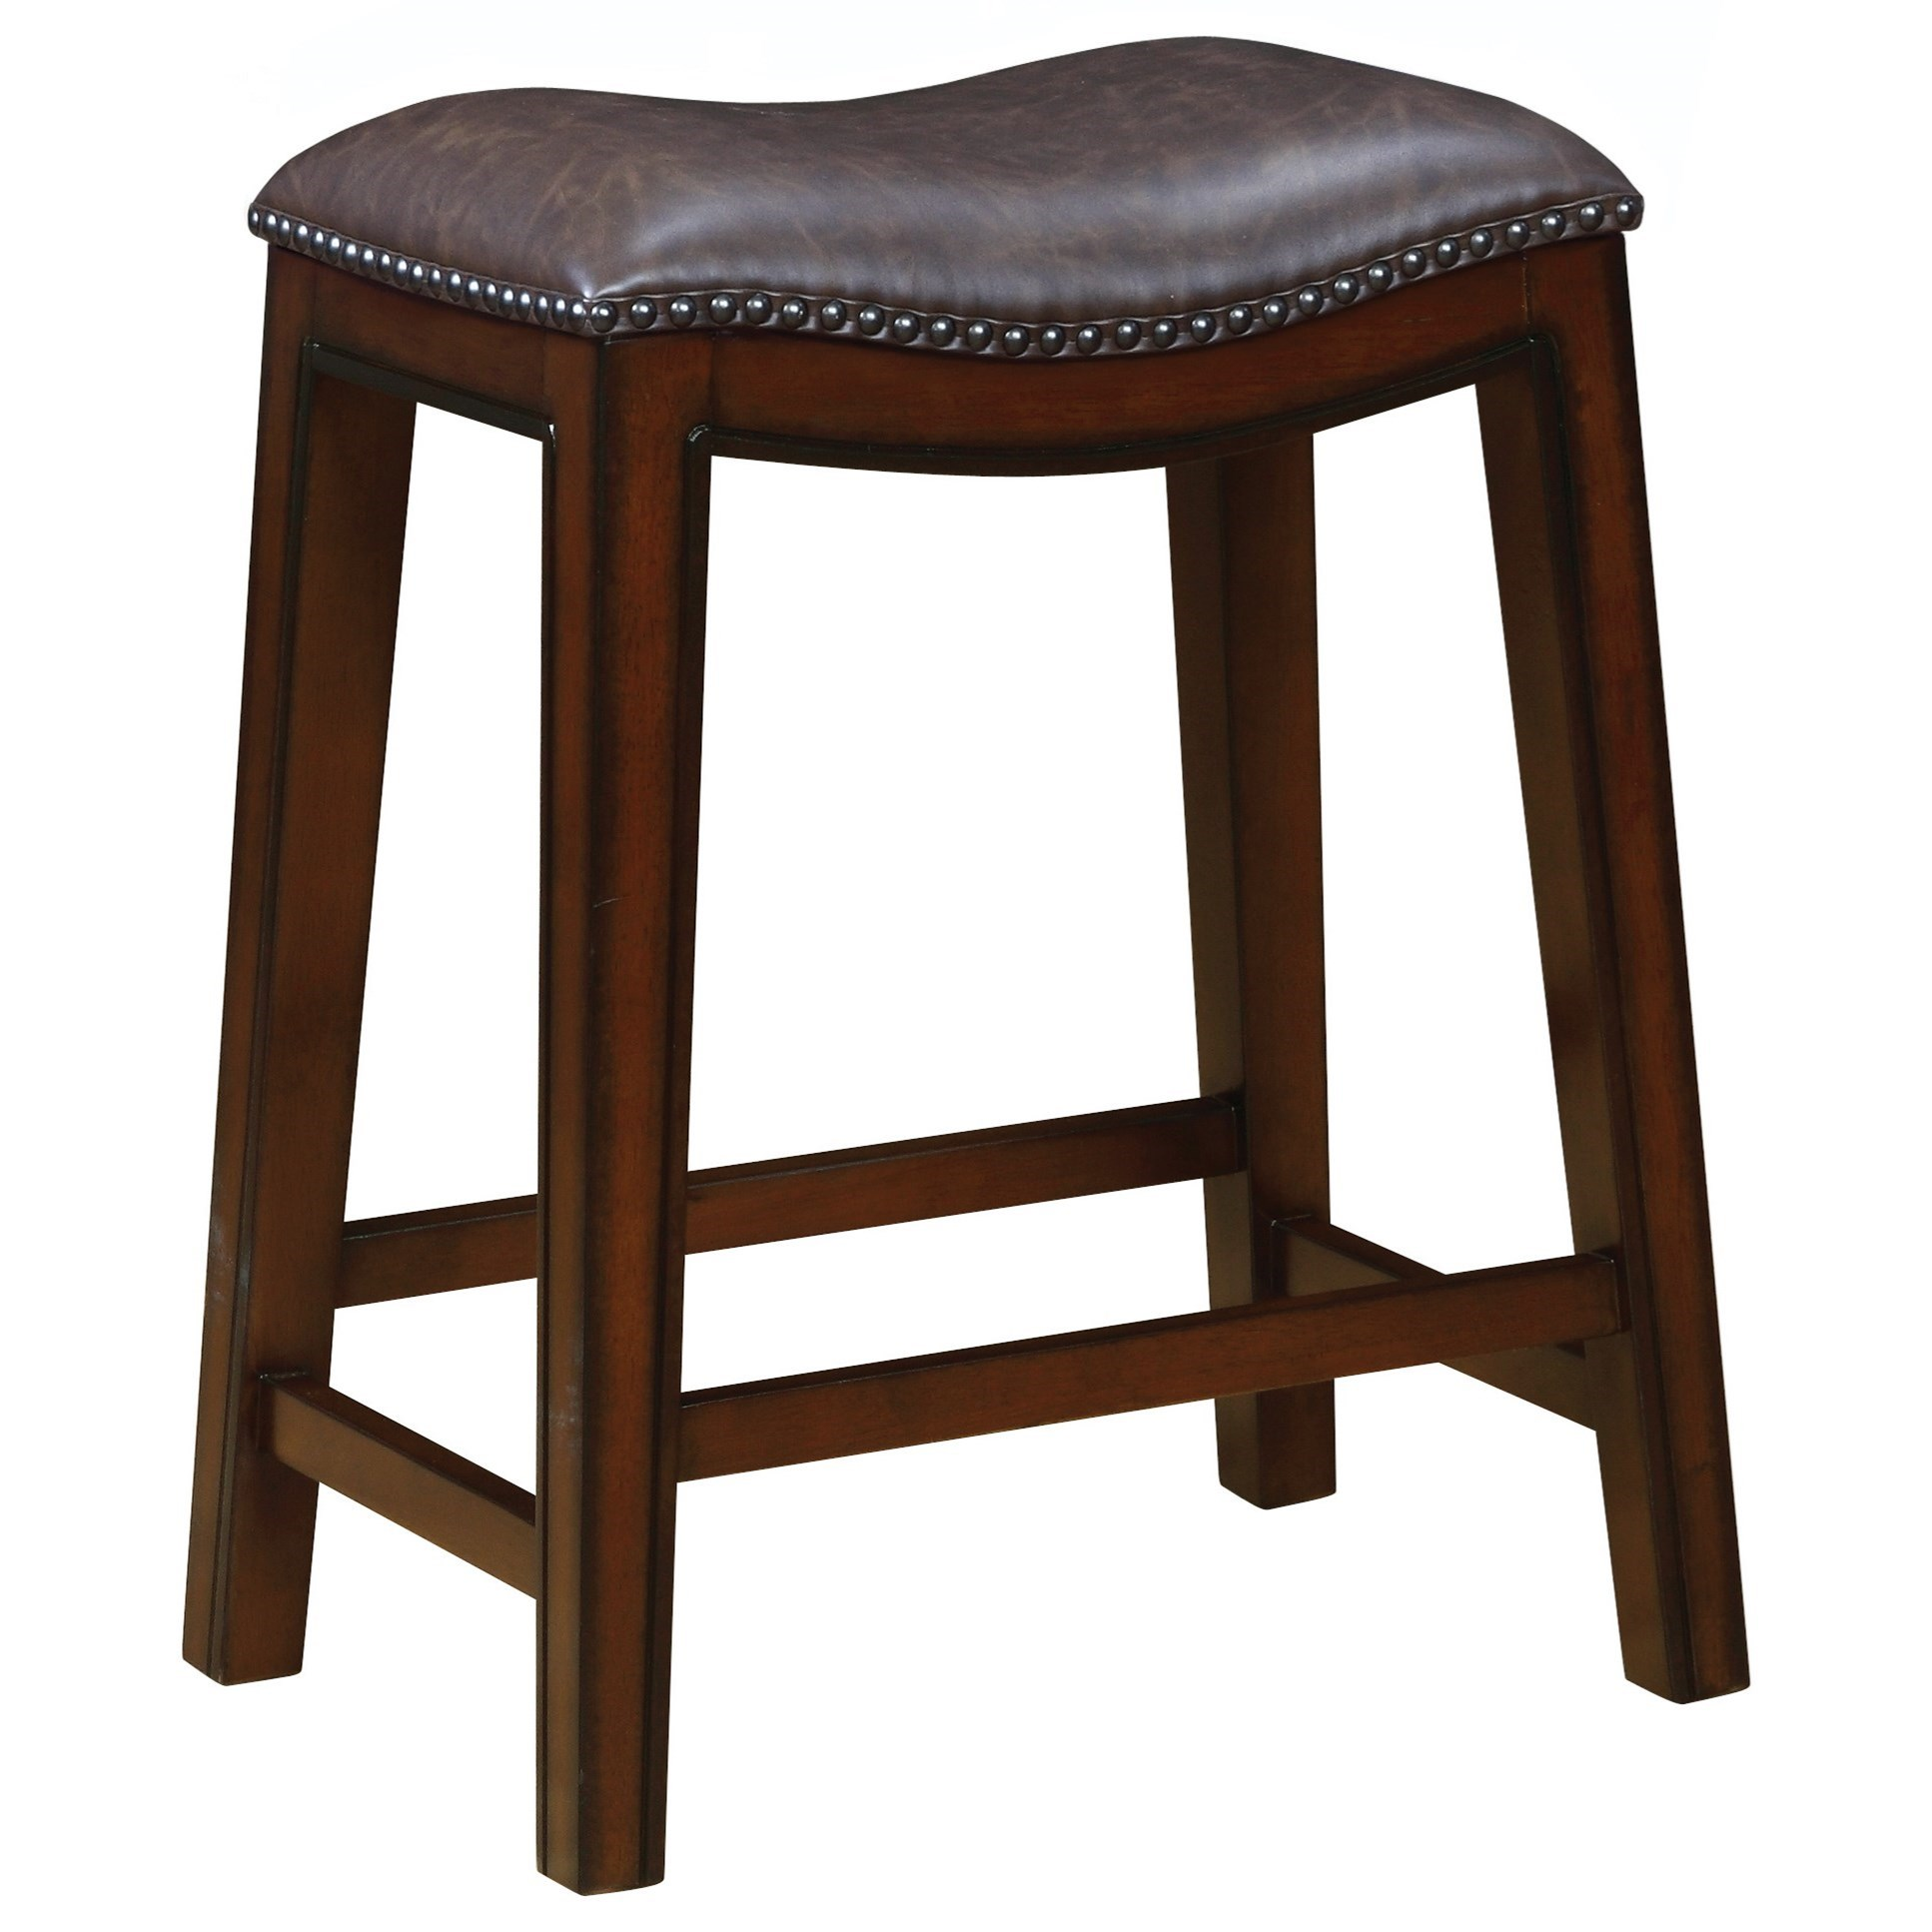 Bar Height Dining Chairs Coaster Dining Chairs And Bar Stools Backless Counter